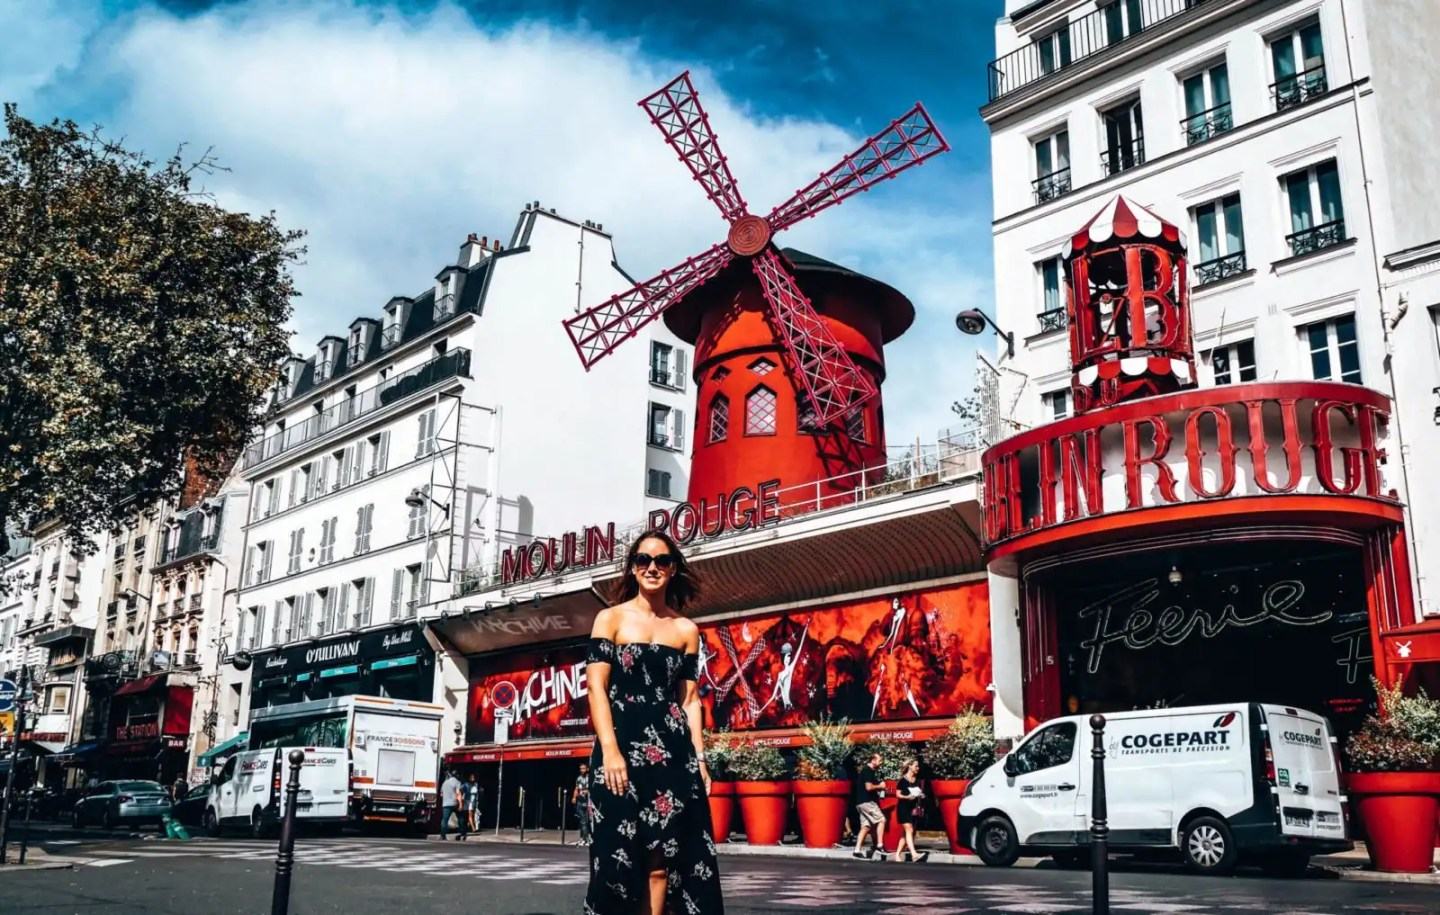 Moulin Rouge as part of 2 days Paris itinerary